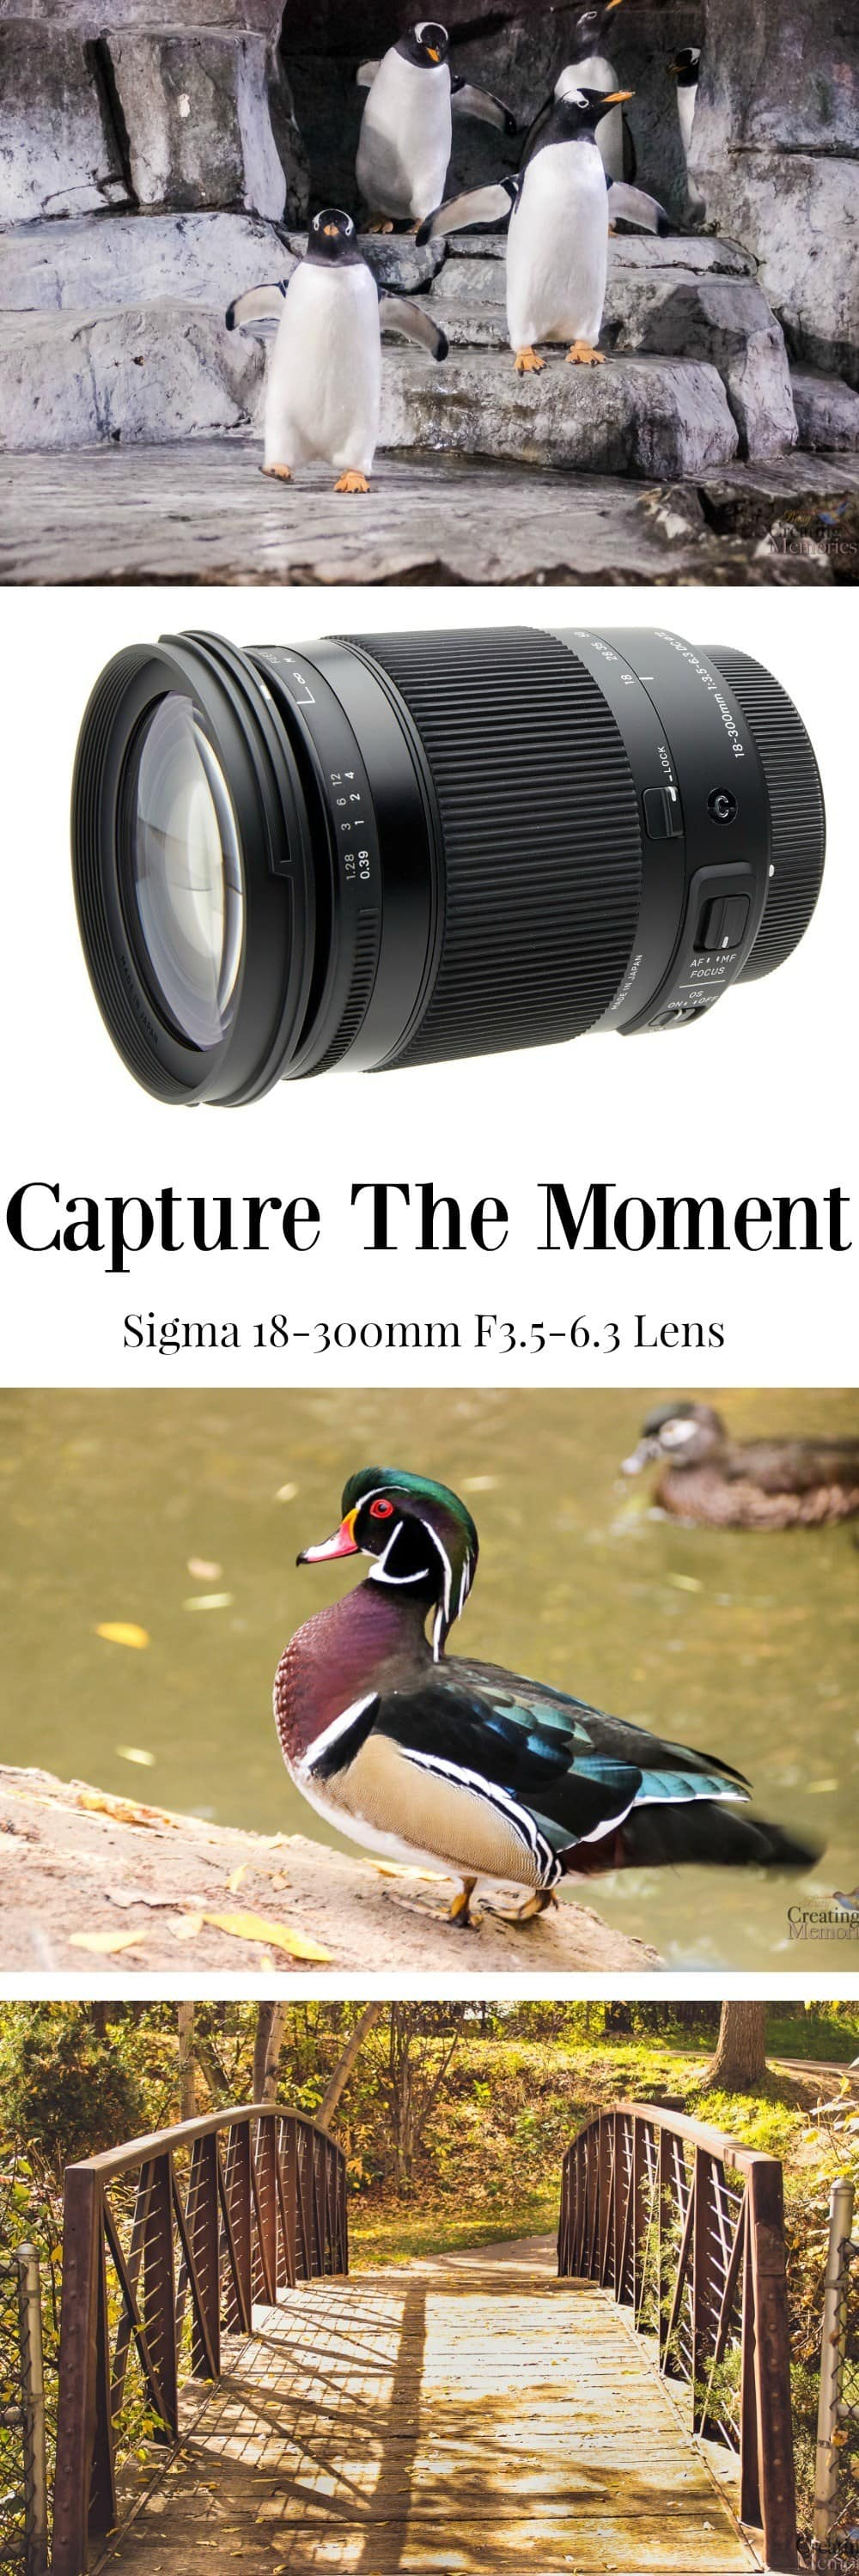 Don't miss the meaningful moments because you were unprepared! Discover how to capture the moment with the Sigma 18-300mm lens for all family events